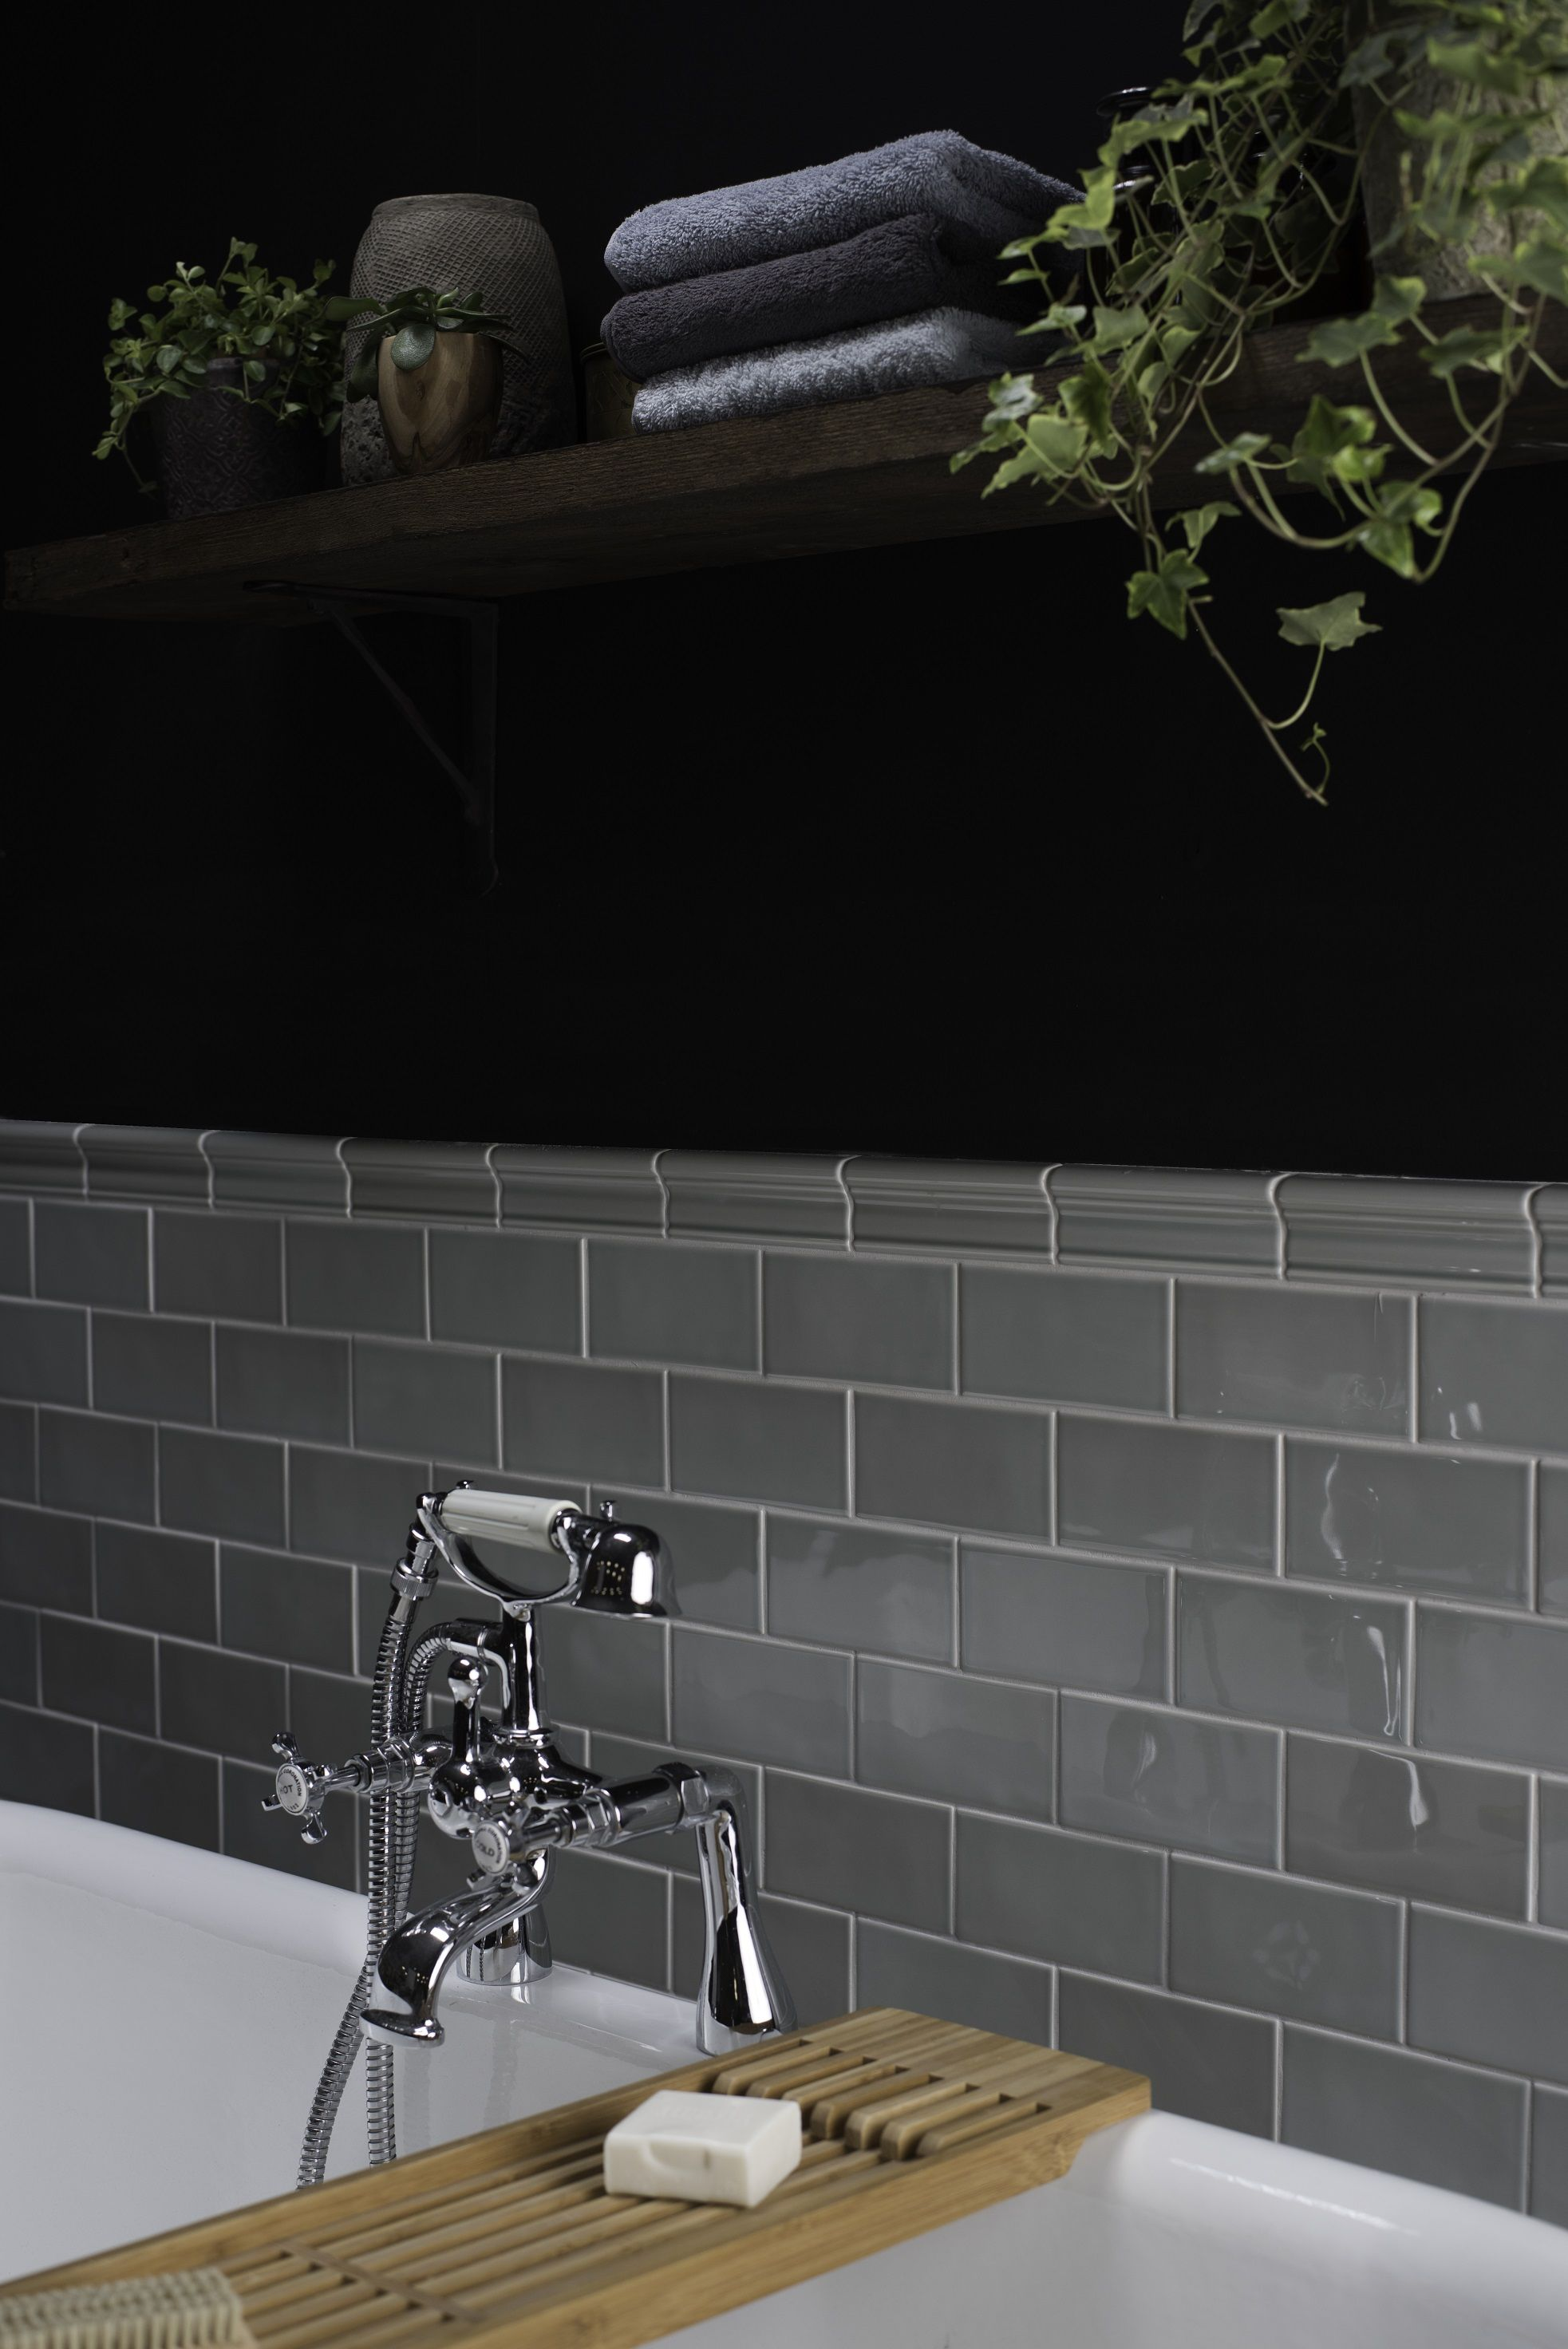 Sleek Modern Dark Bathroom With Glossy Tiled Walls: We Absolutely LOVE This Bathroom Setting. The Dark Walls